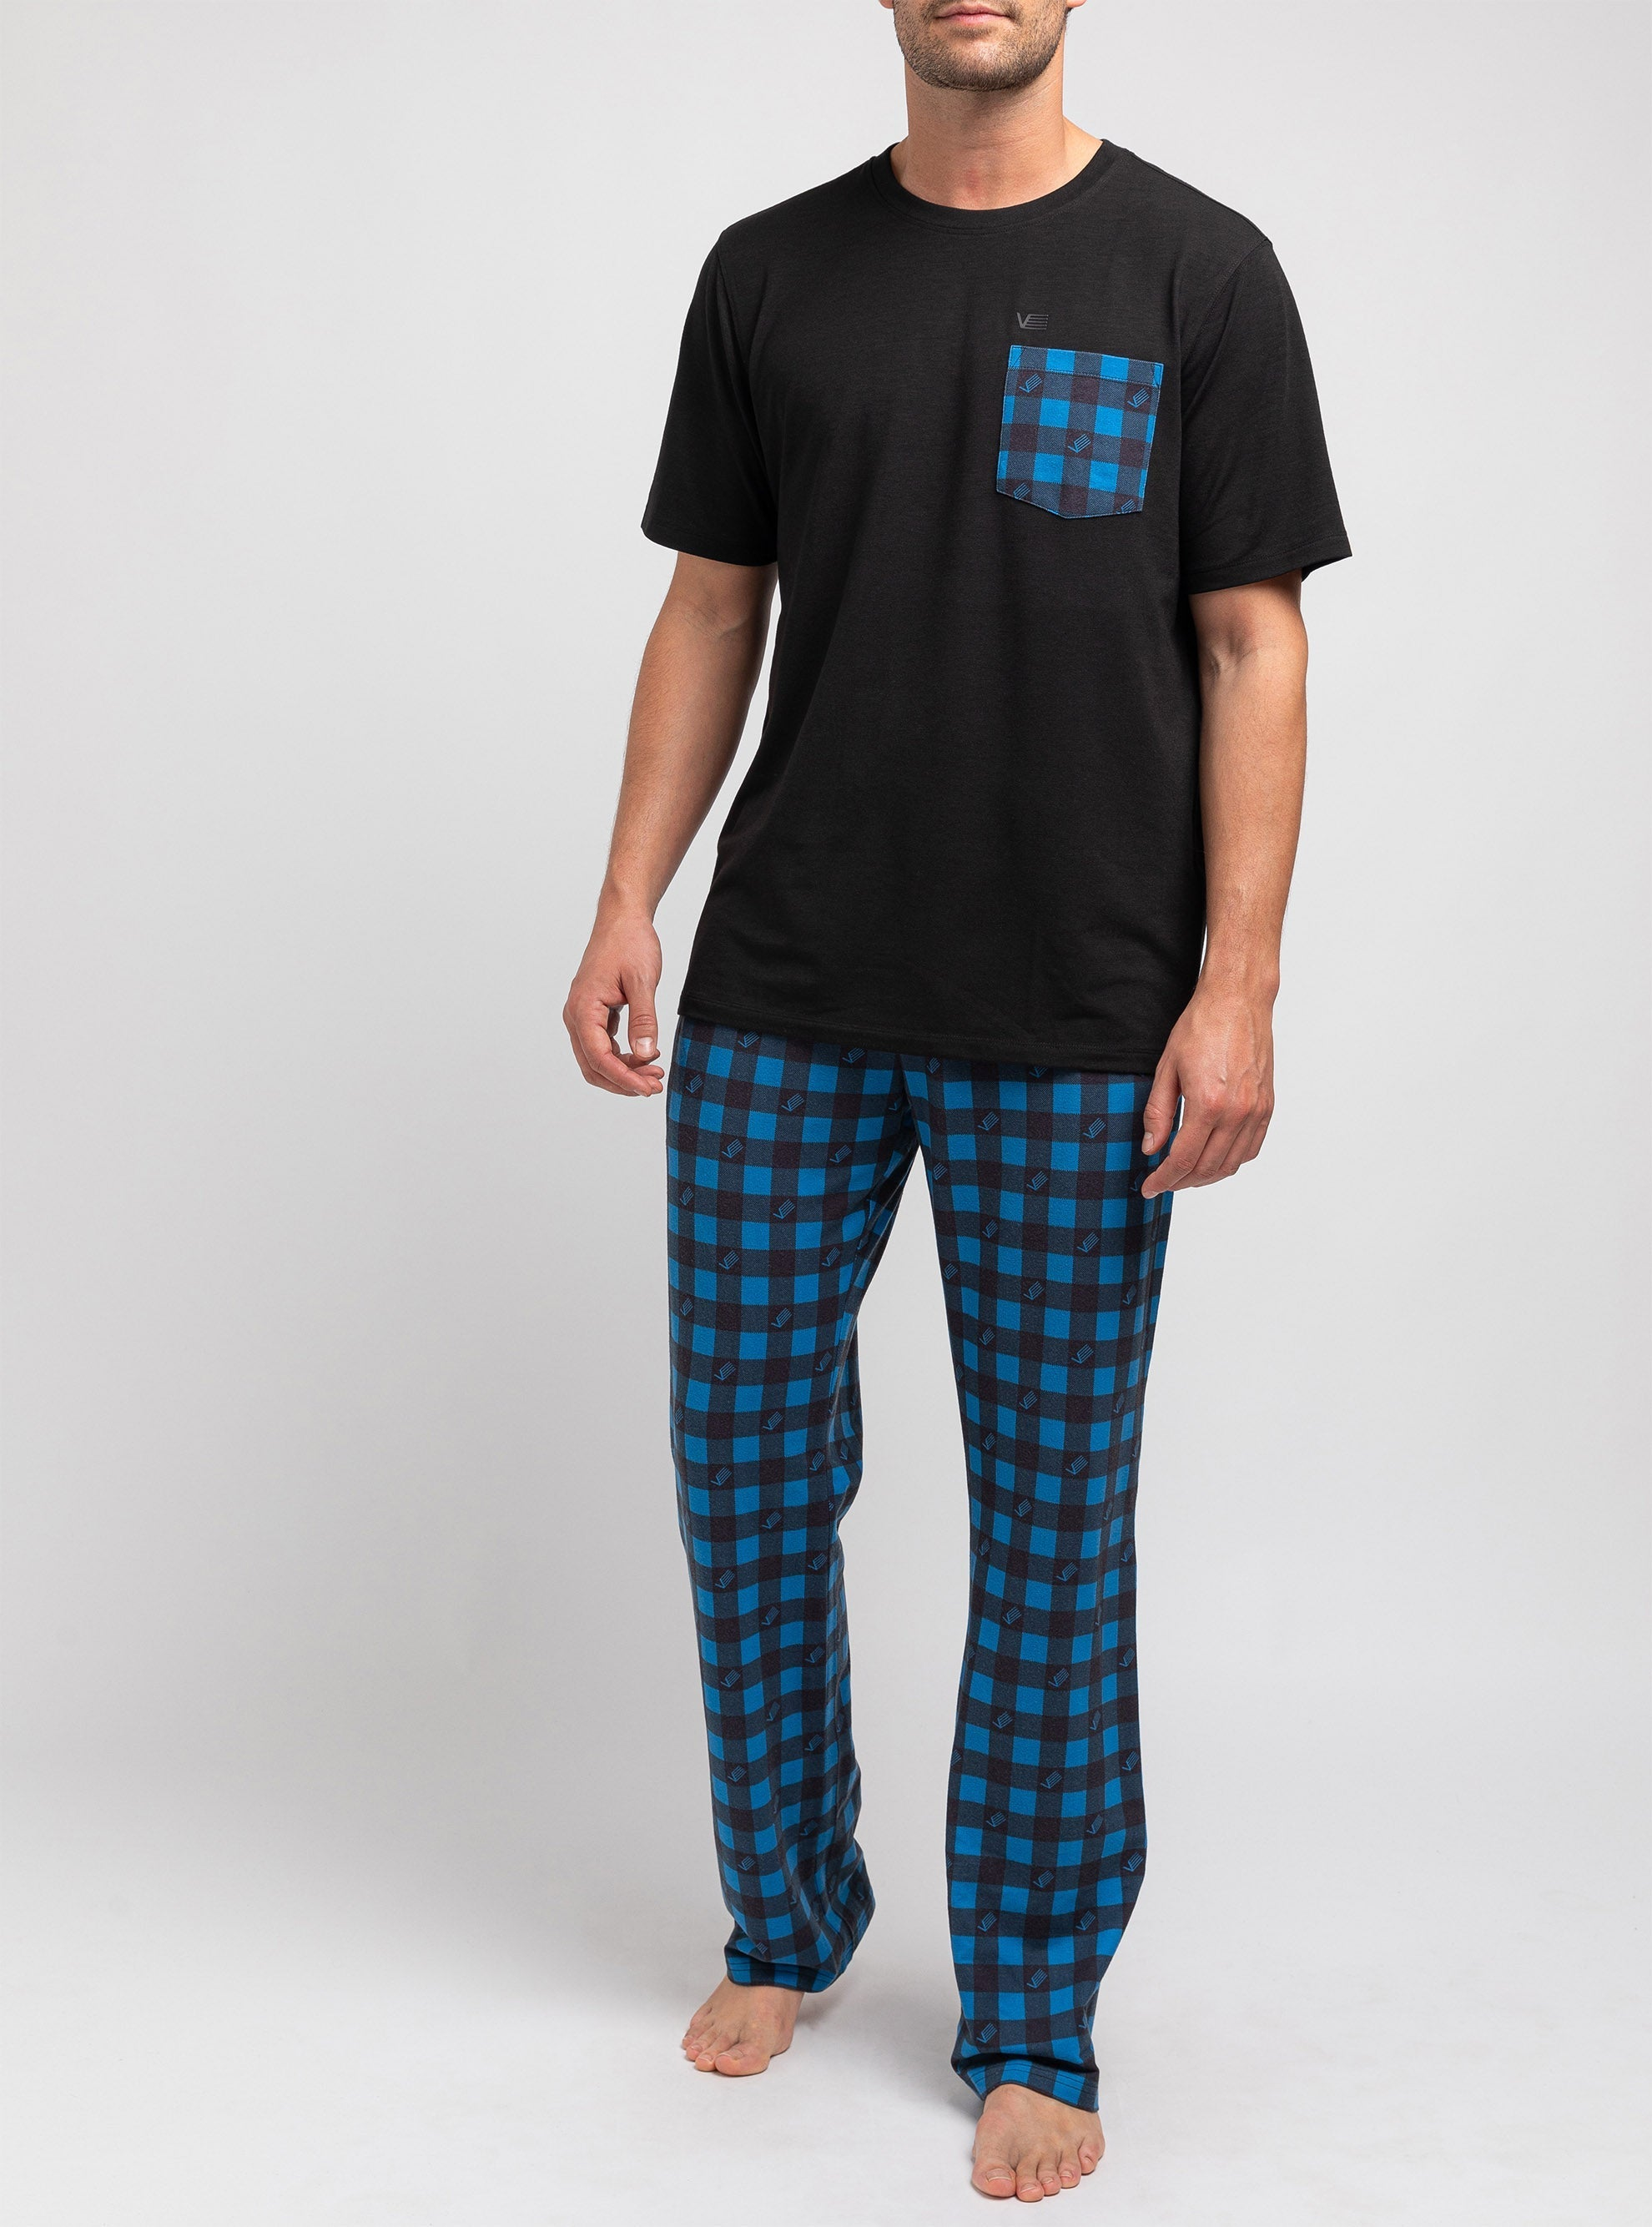 Sodalite blue checkered pajama set